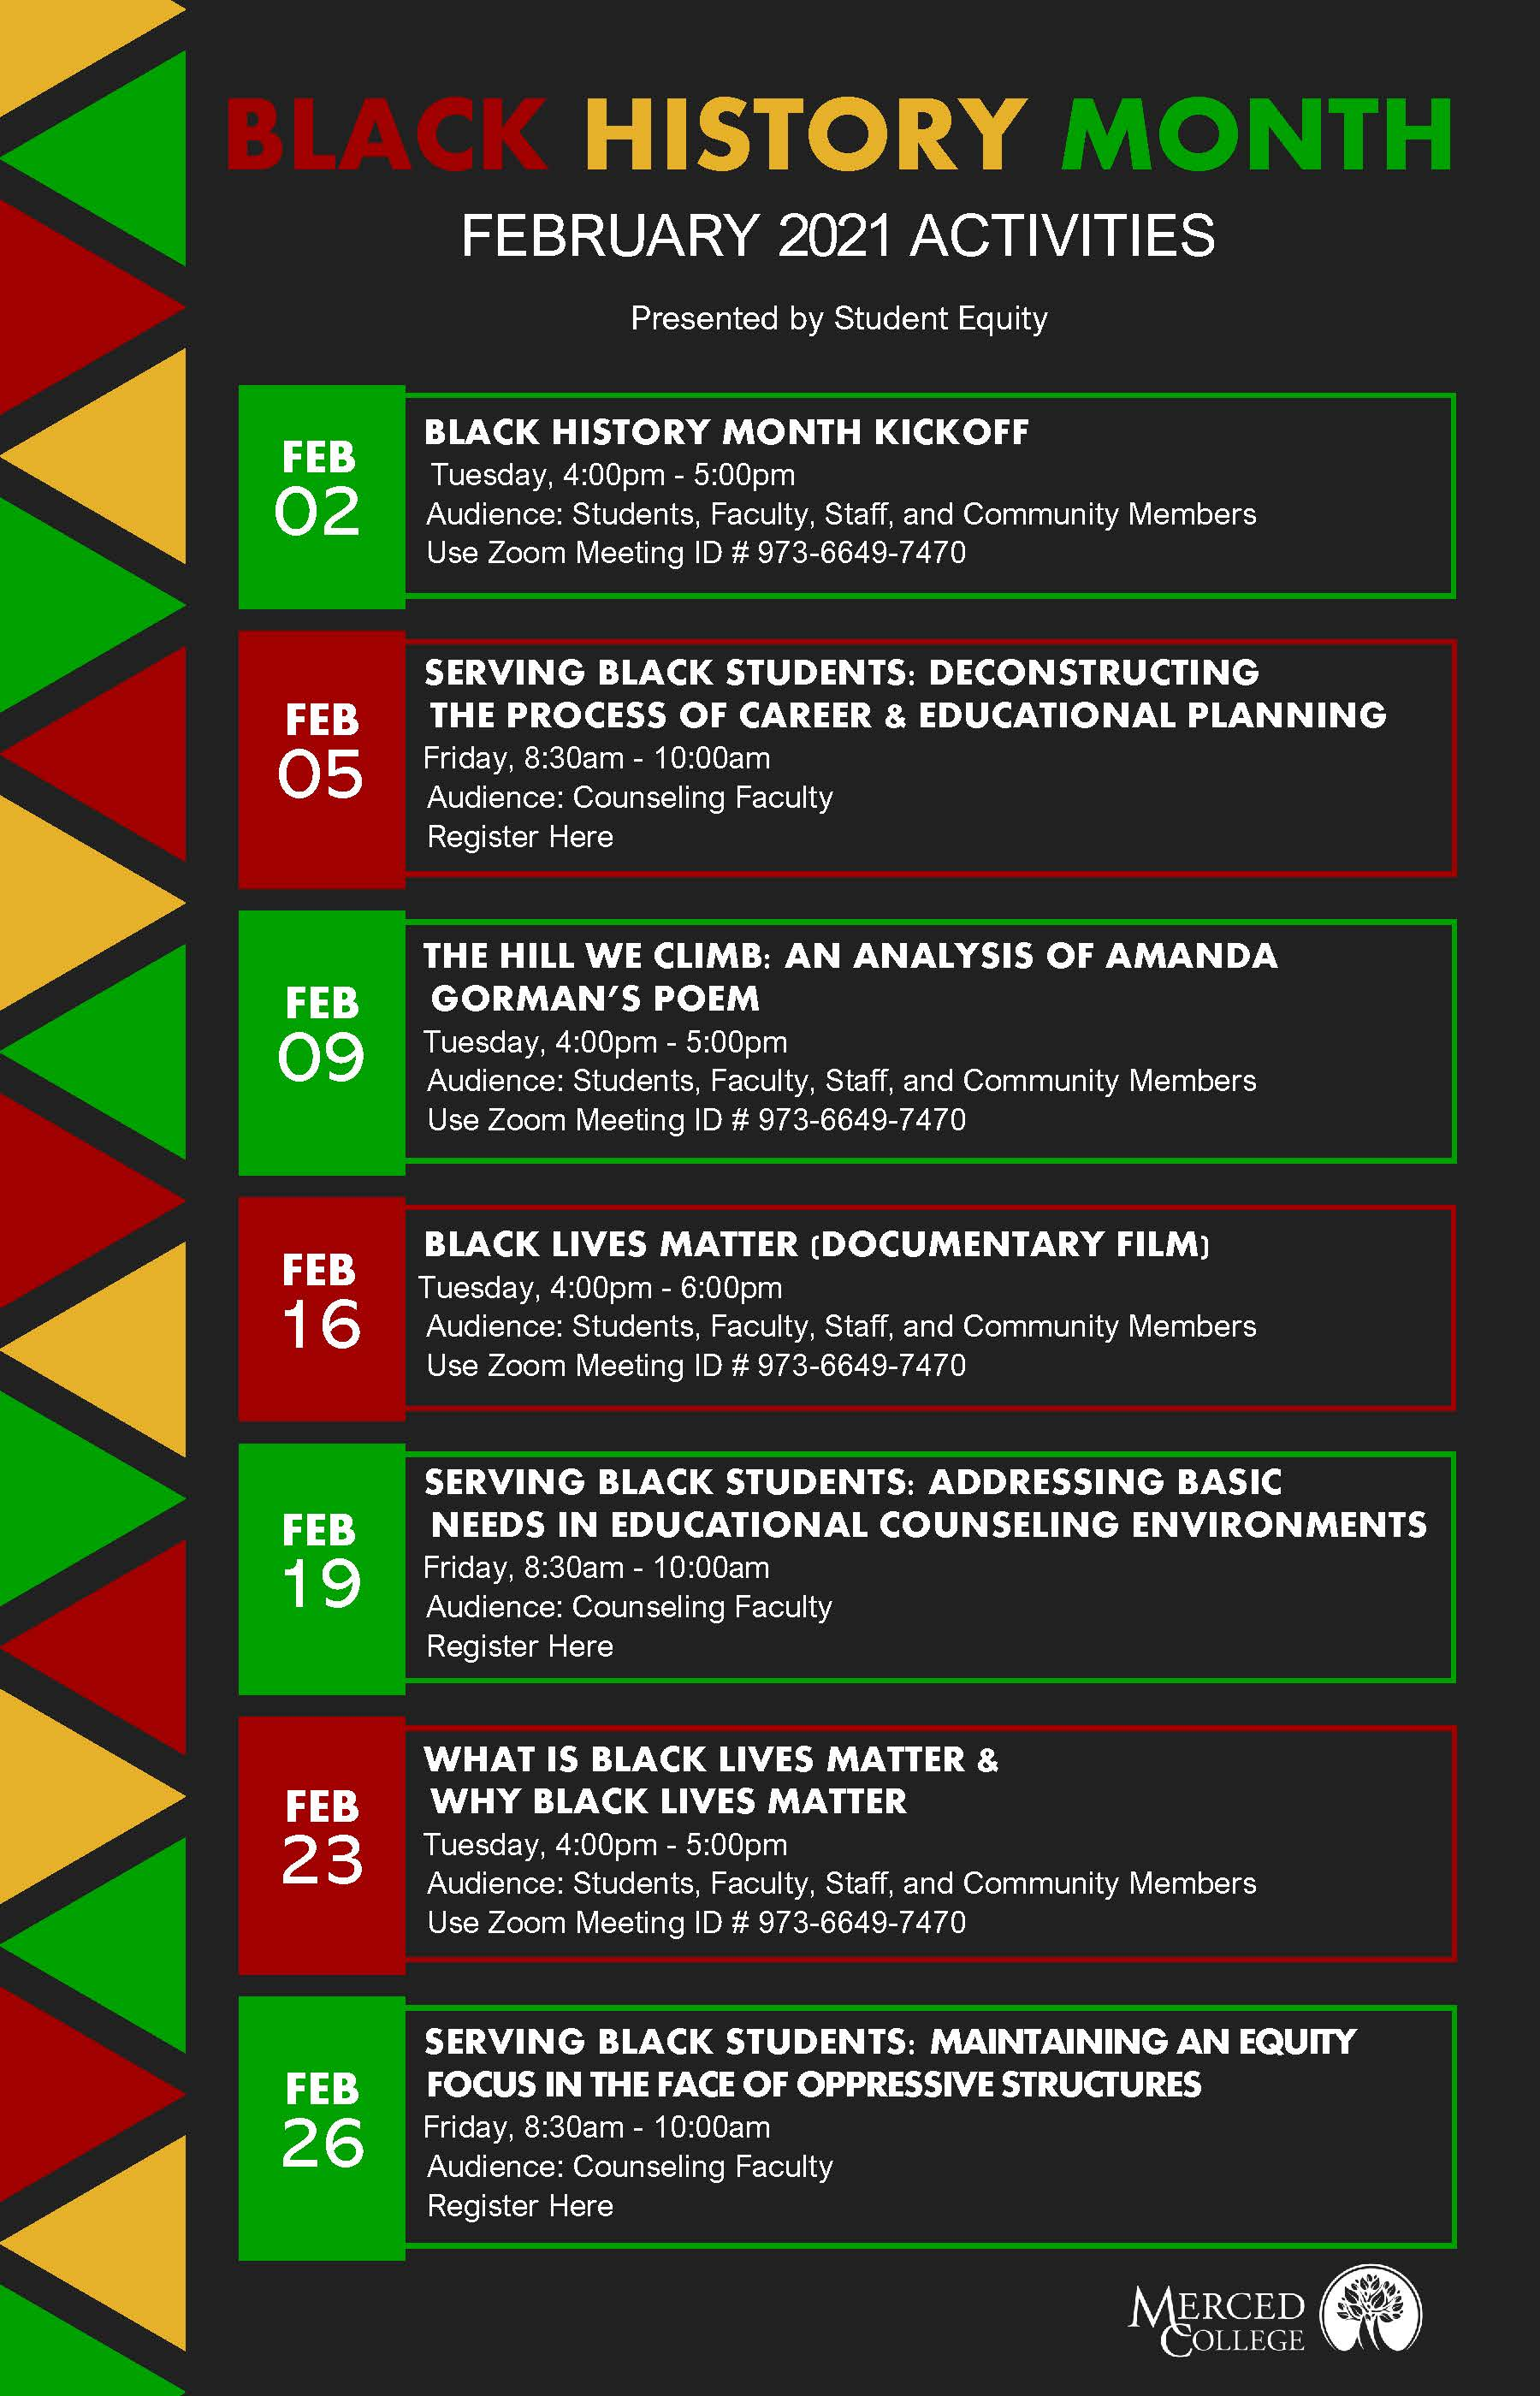 Black History Month list of activities for Feb 2021